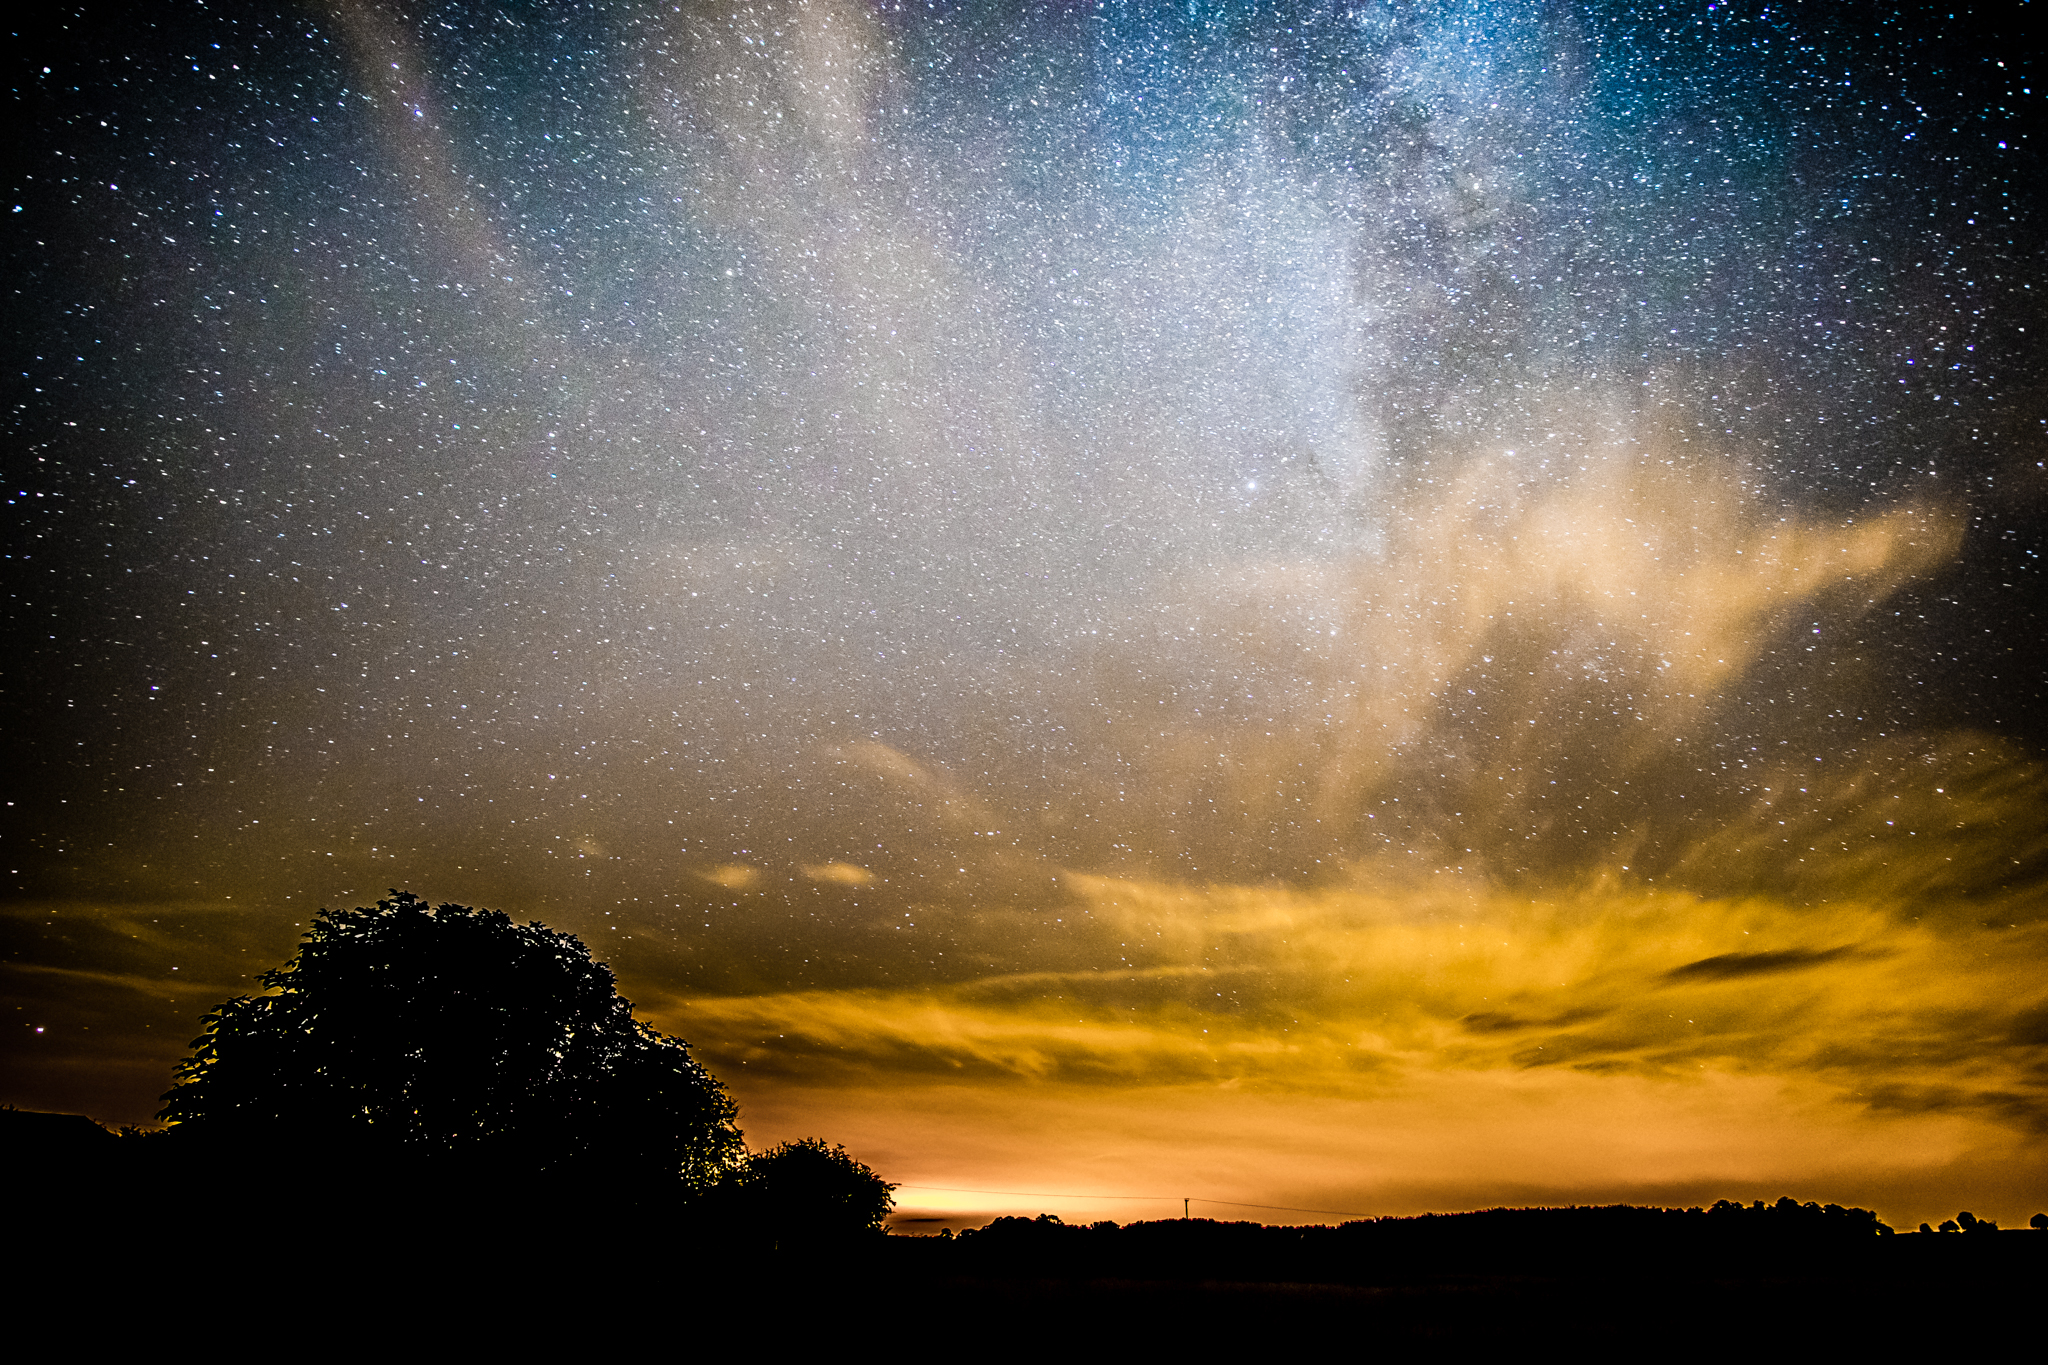 Fuji X-E1 Samyang 12mm 30 seconds F/2 ISO 1250 outside of Watton